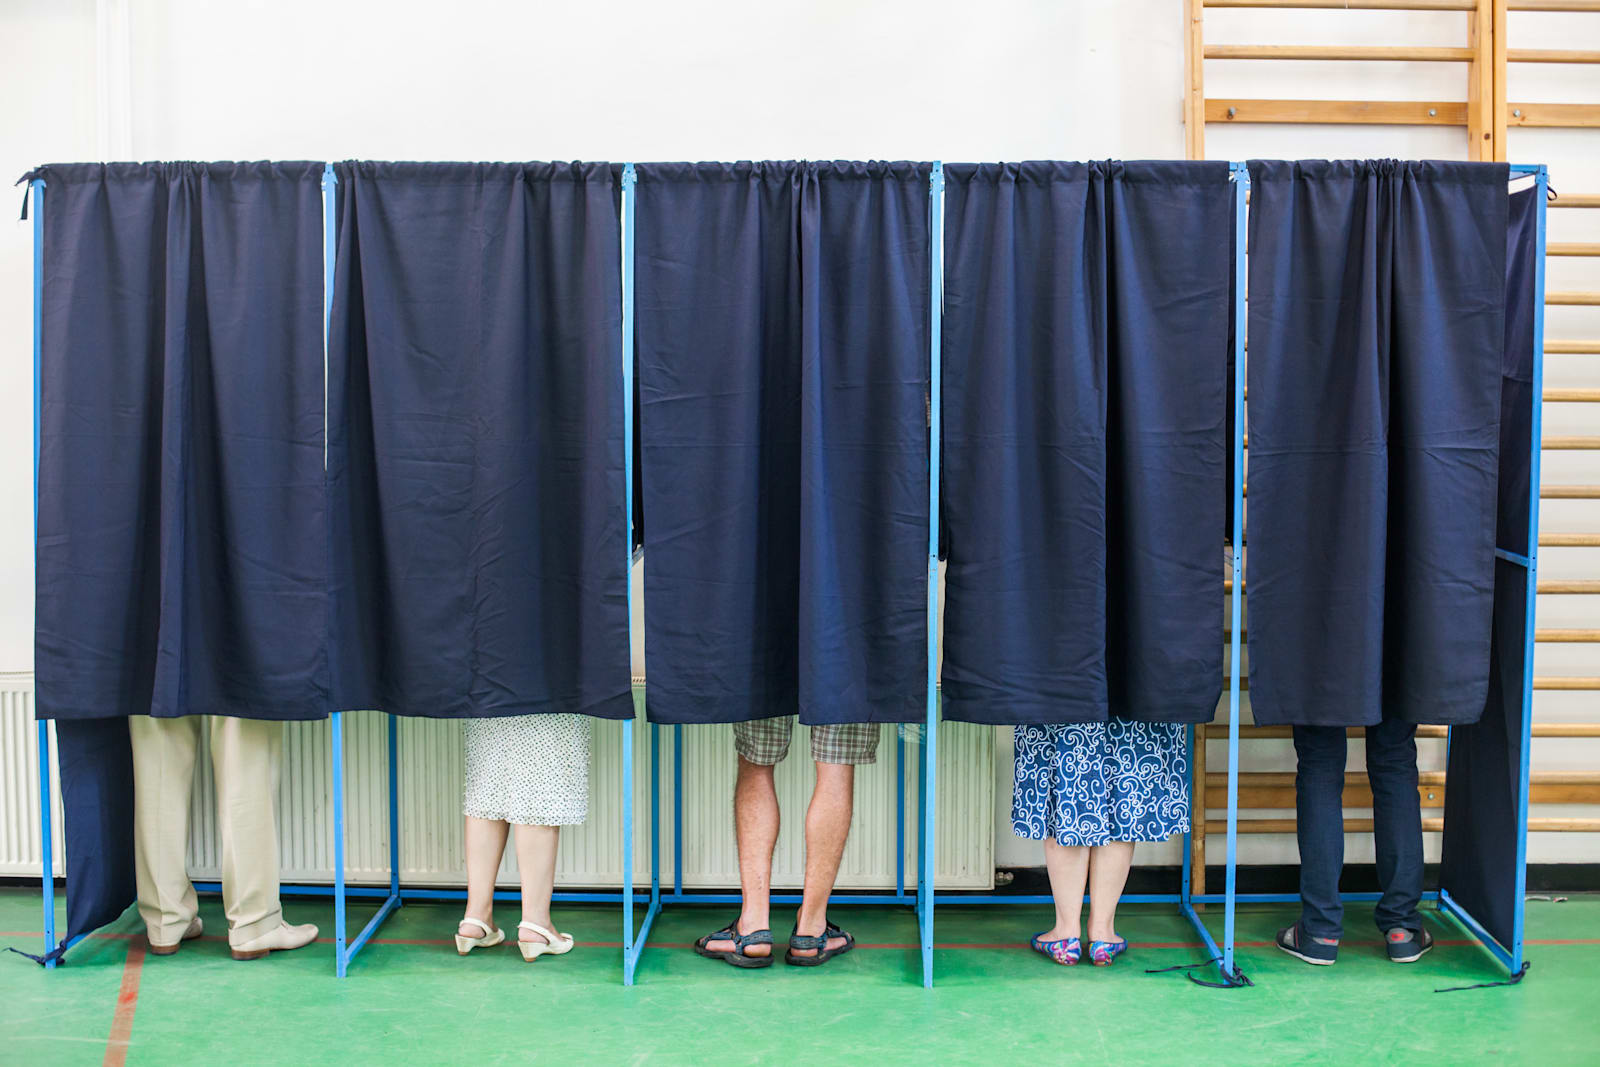 people-voting-in-booths-picture-id619772